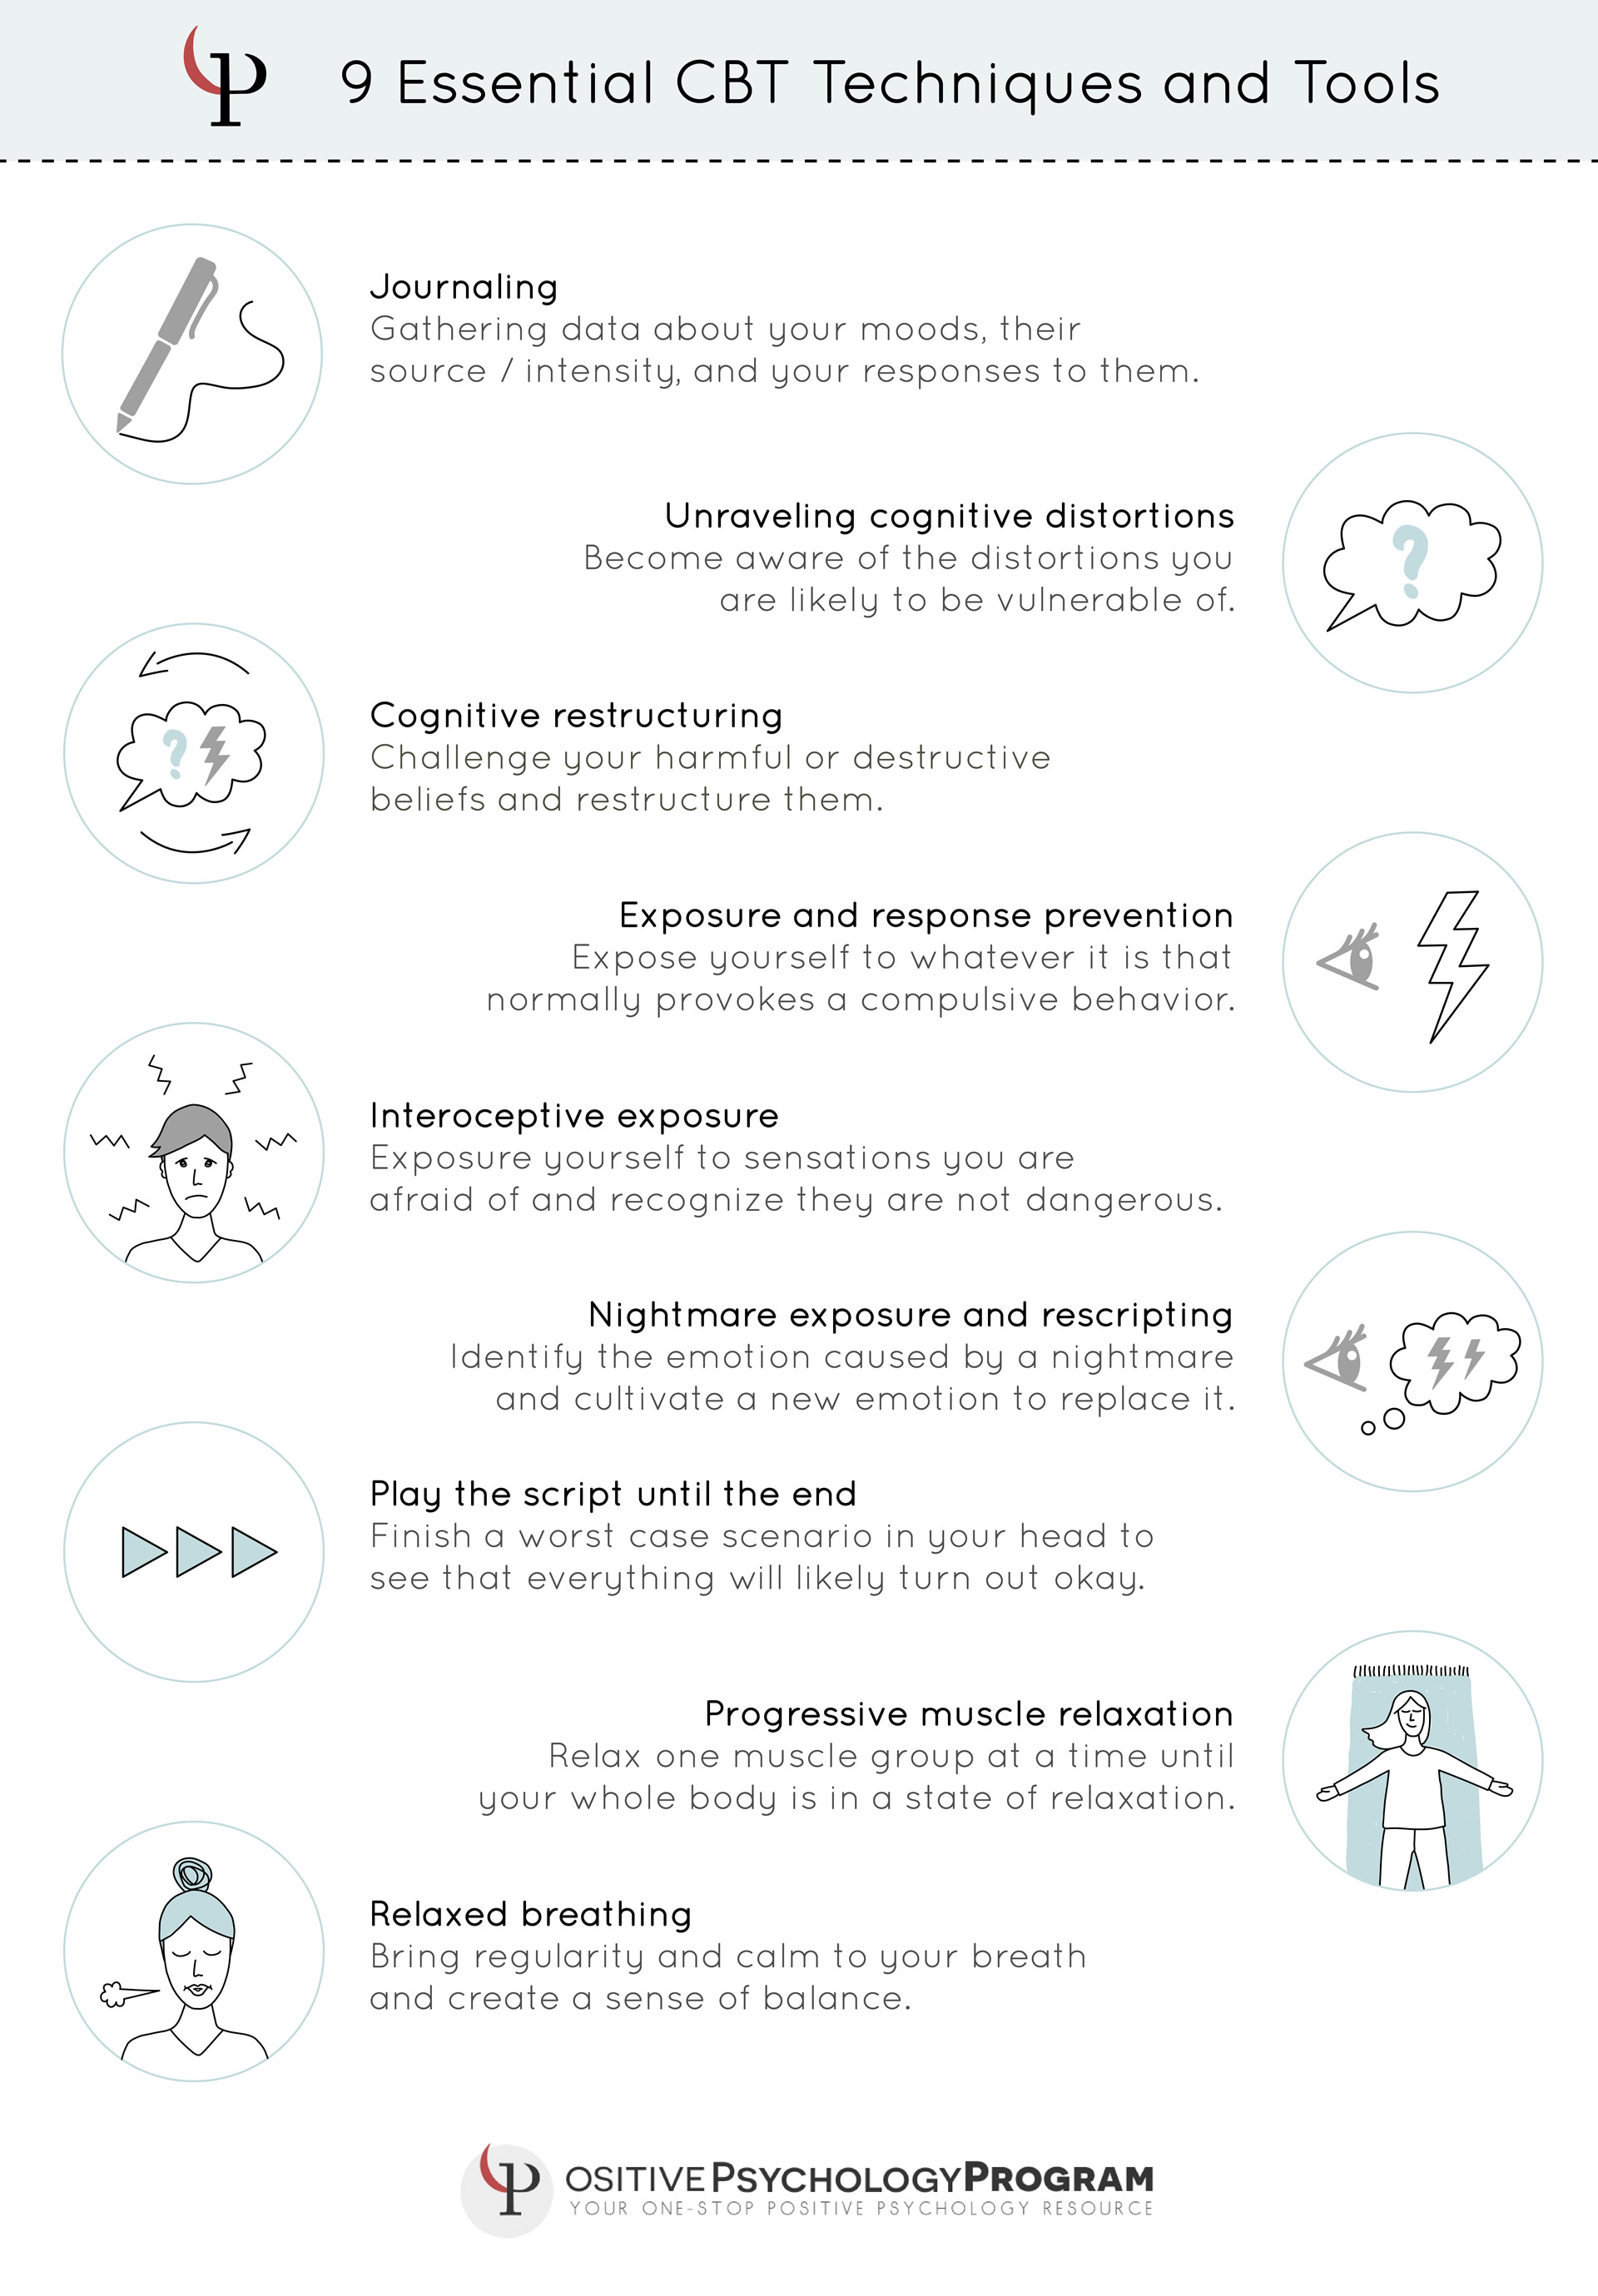 25 Cbt Techniques And Worksheets For Cognitive Behavioral Therapy | Impulse Control Worksheets Printable